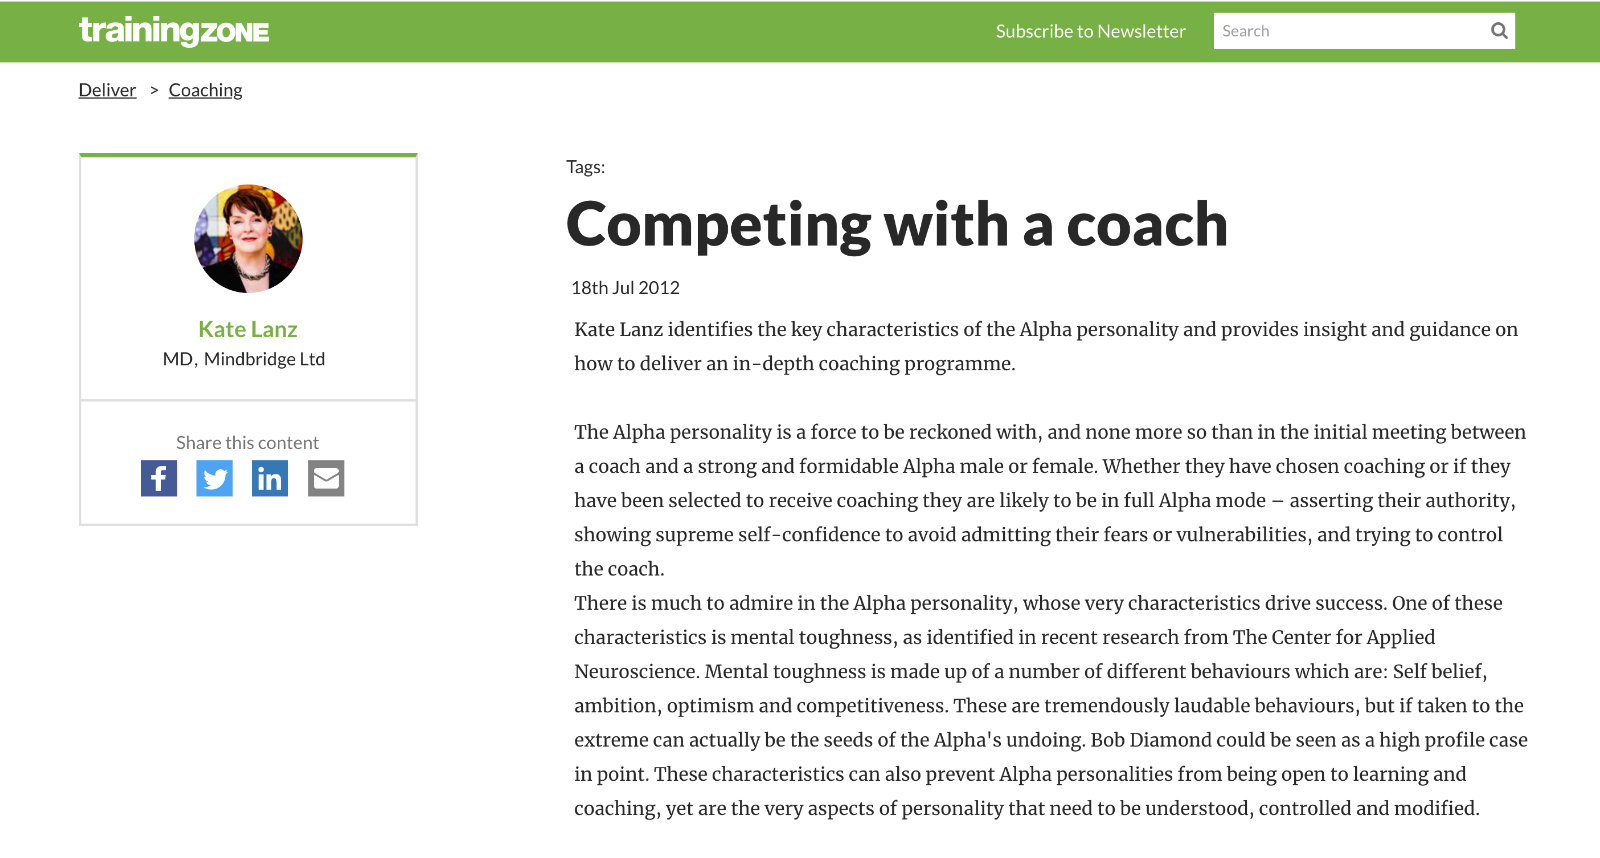 Competing with a coach article in TrainingZone